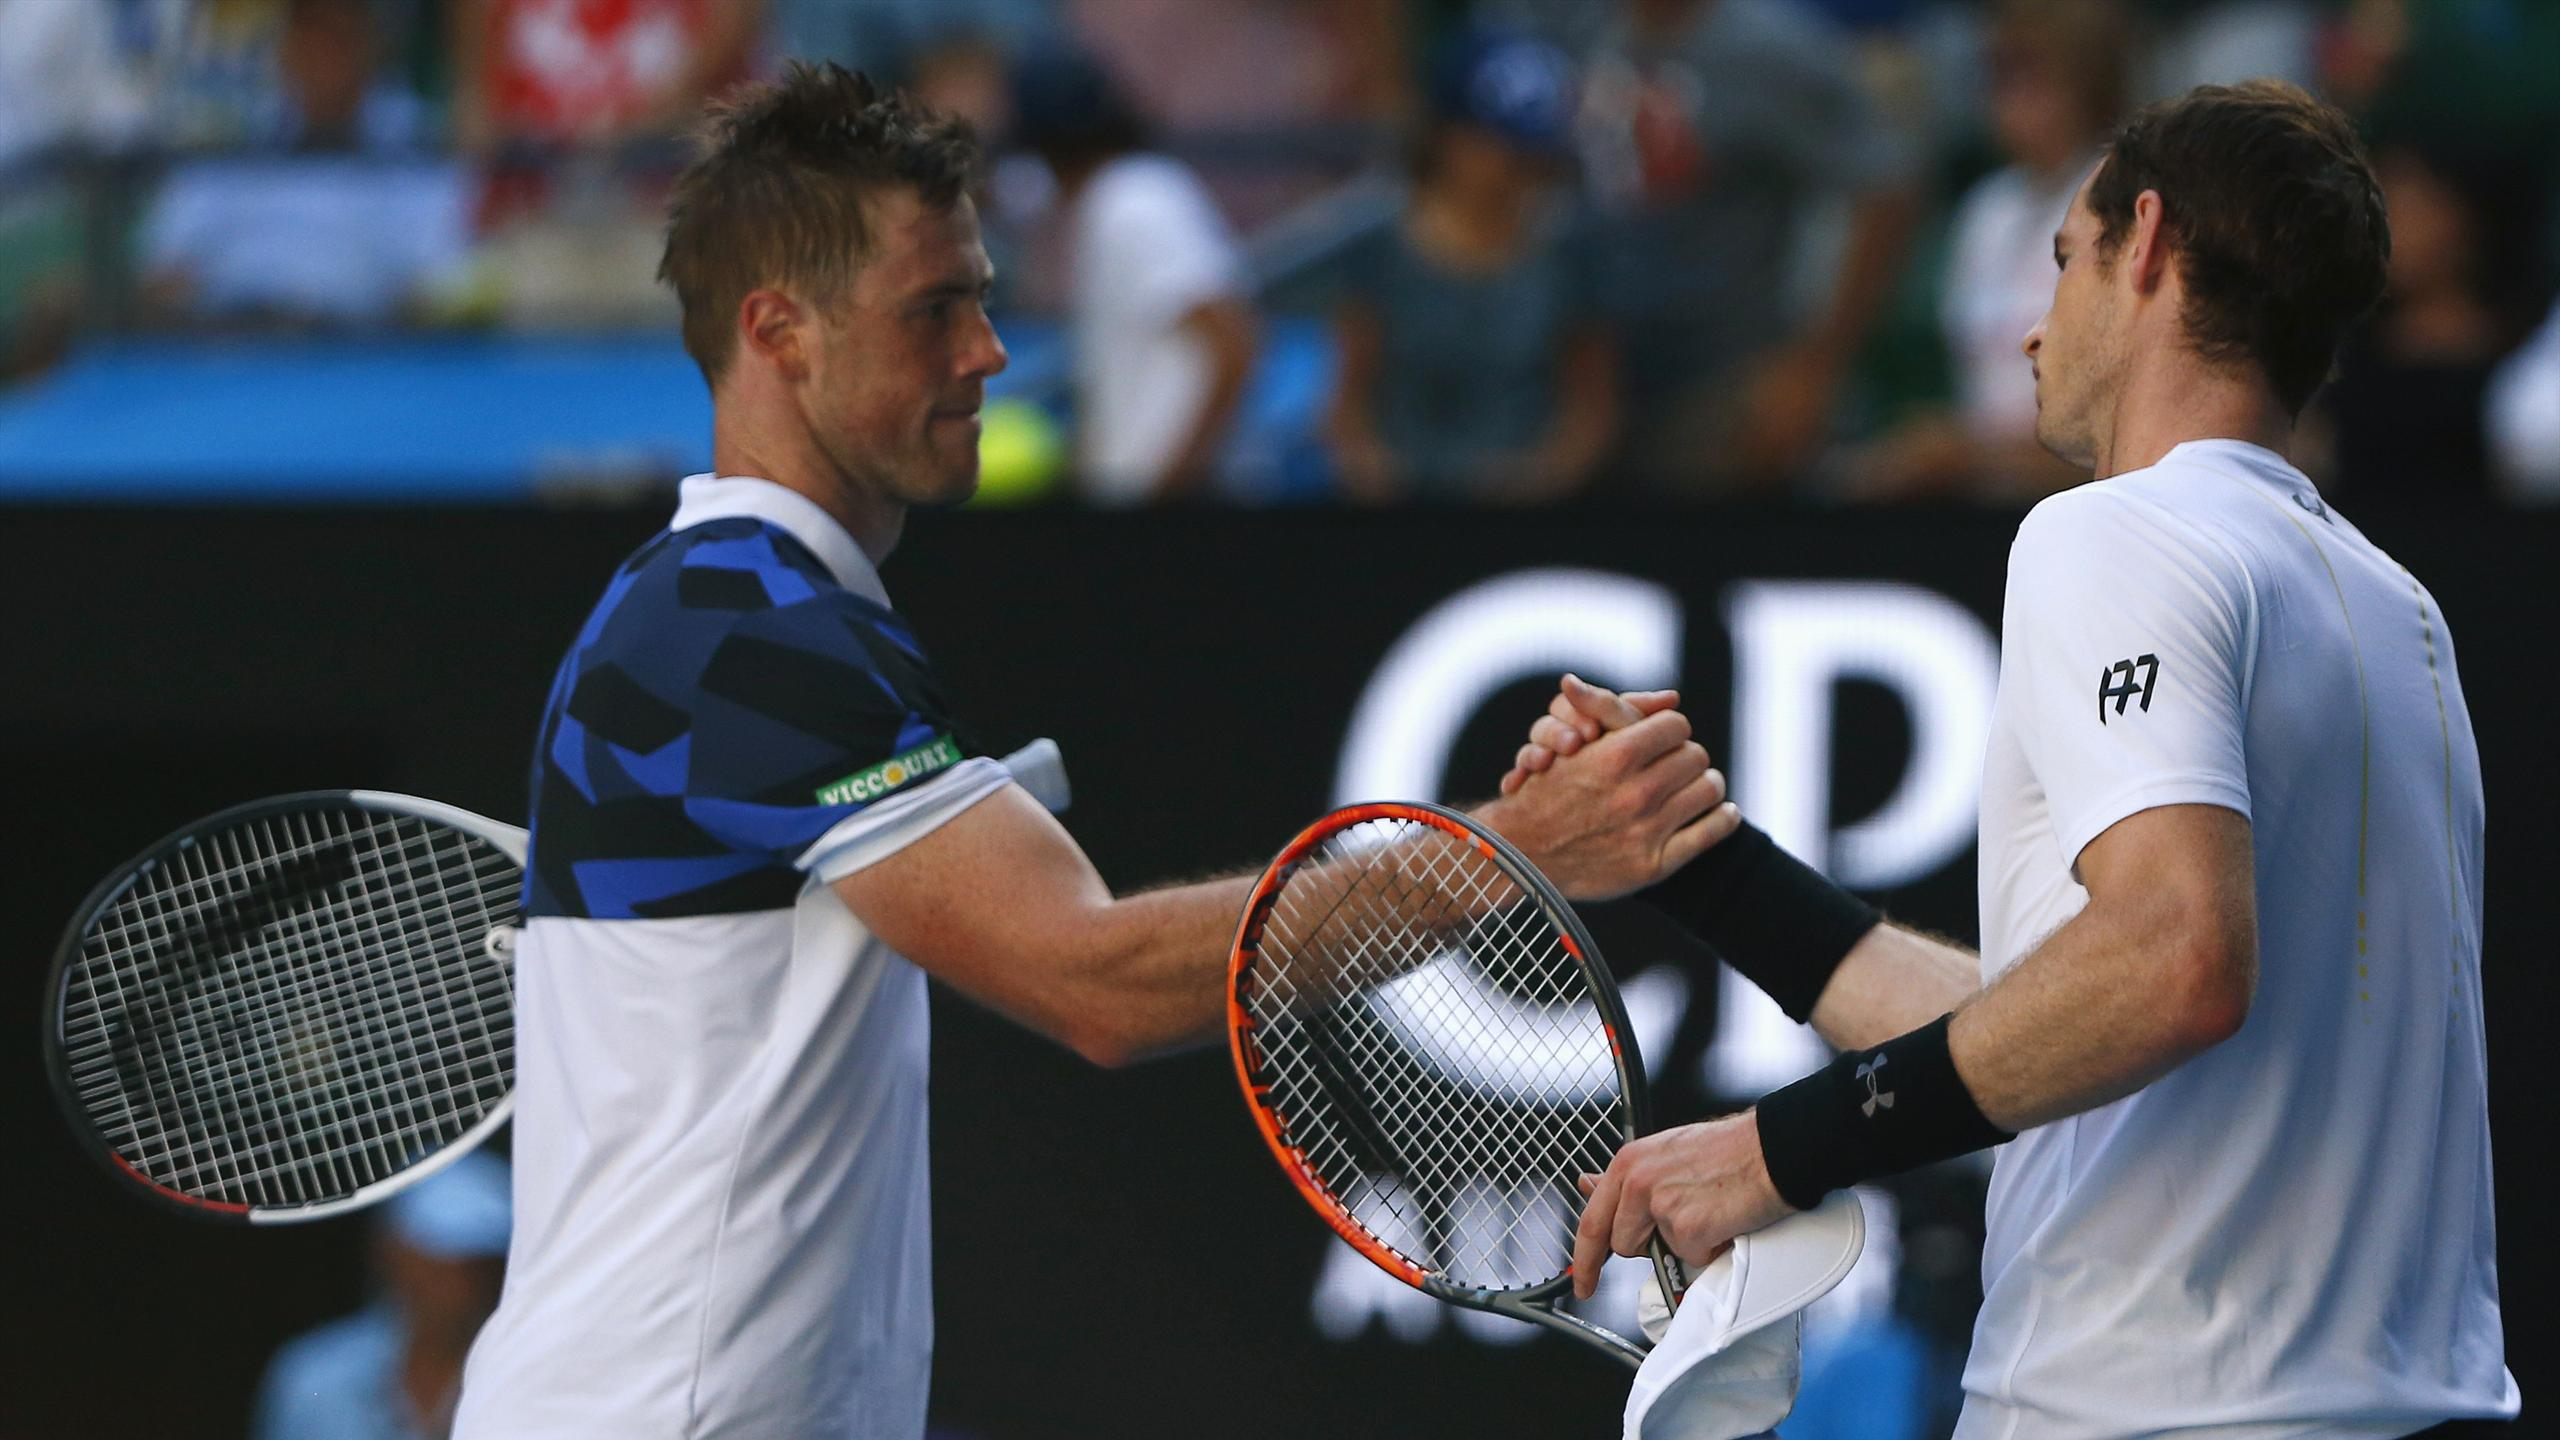 Britain's Andy Murray (R) shakes hands after winning his Men's singles first round match against Ukraine's Illya Marchenko